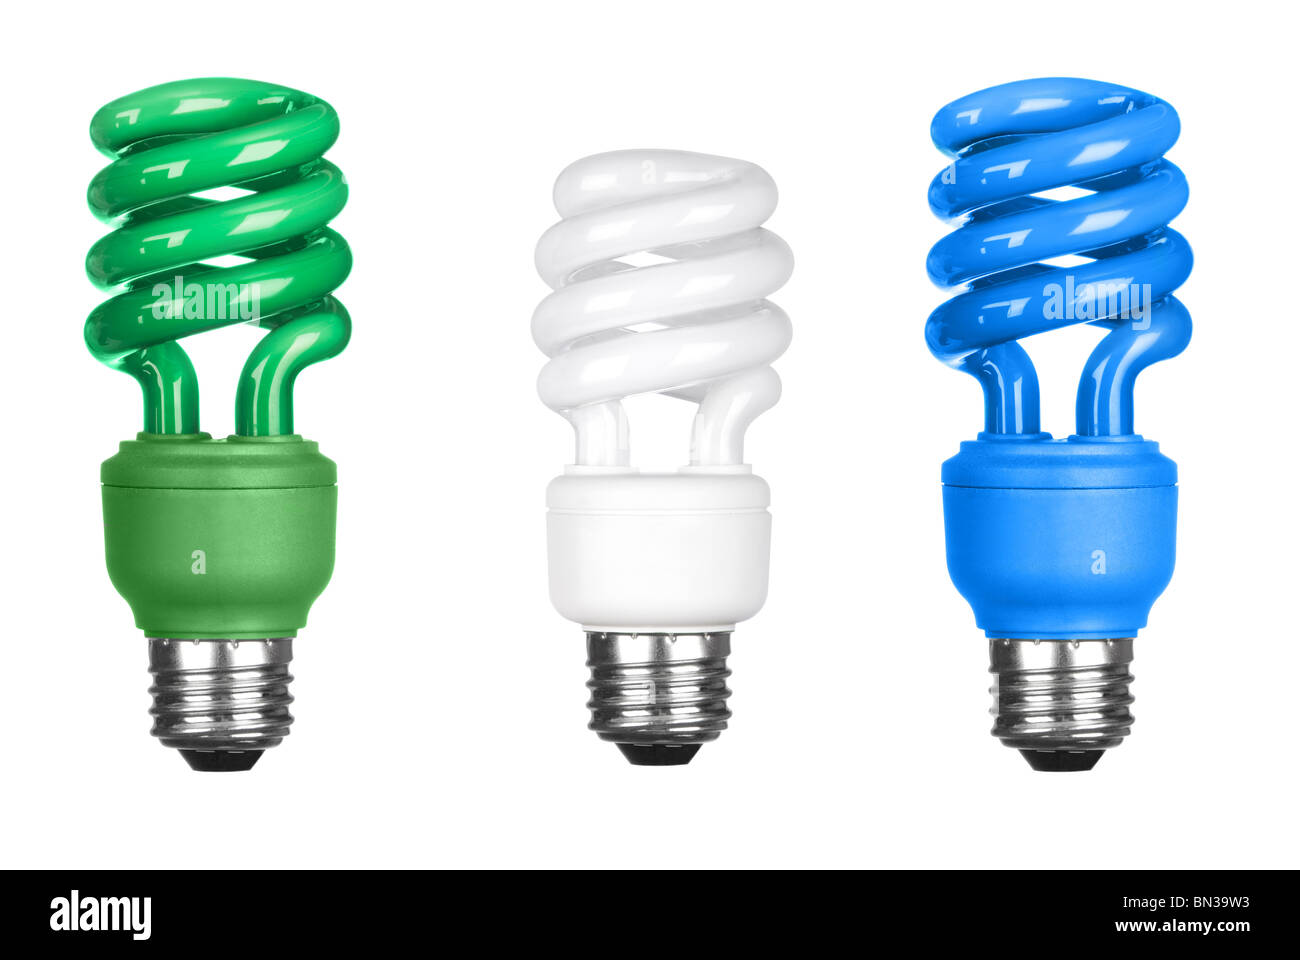 Three energy efficient spiral light bulbs isolated on white. - Stock Image